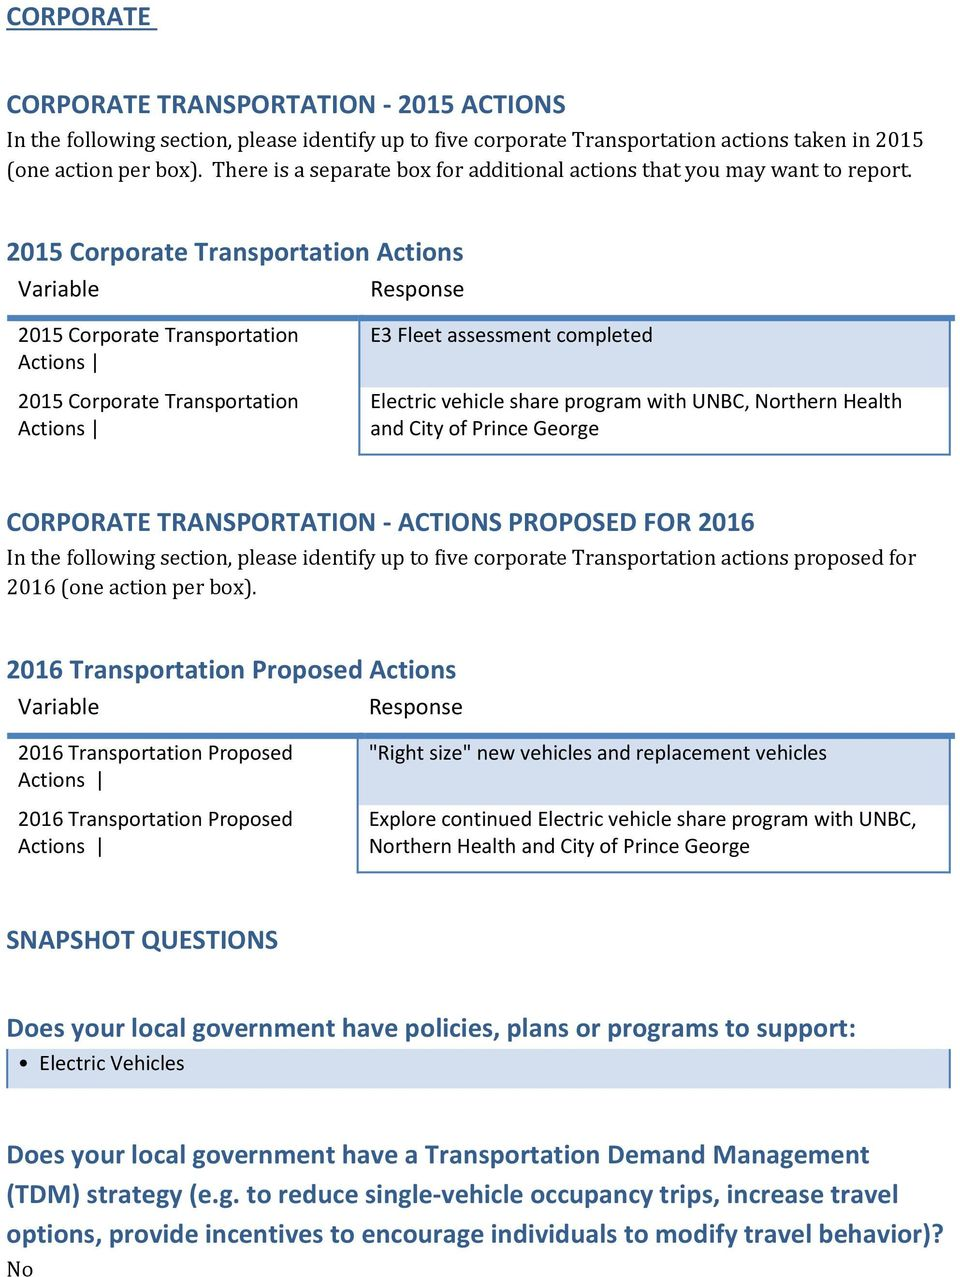 2015 Corporate Transportation Actions 2015 Corporate Transportation Actions 2015 Corporate Transportation Actions E3 Fleet assessment completed Electric vehicle share program with UNBC, Northern